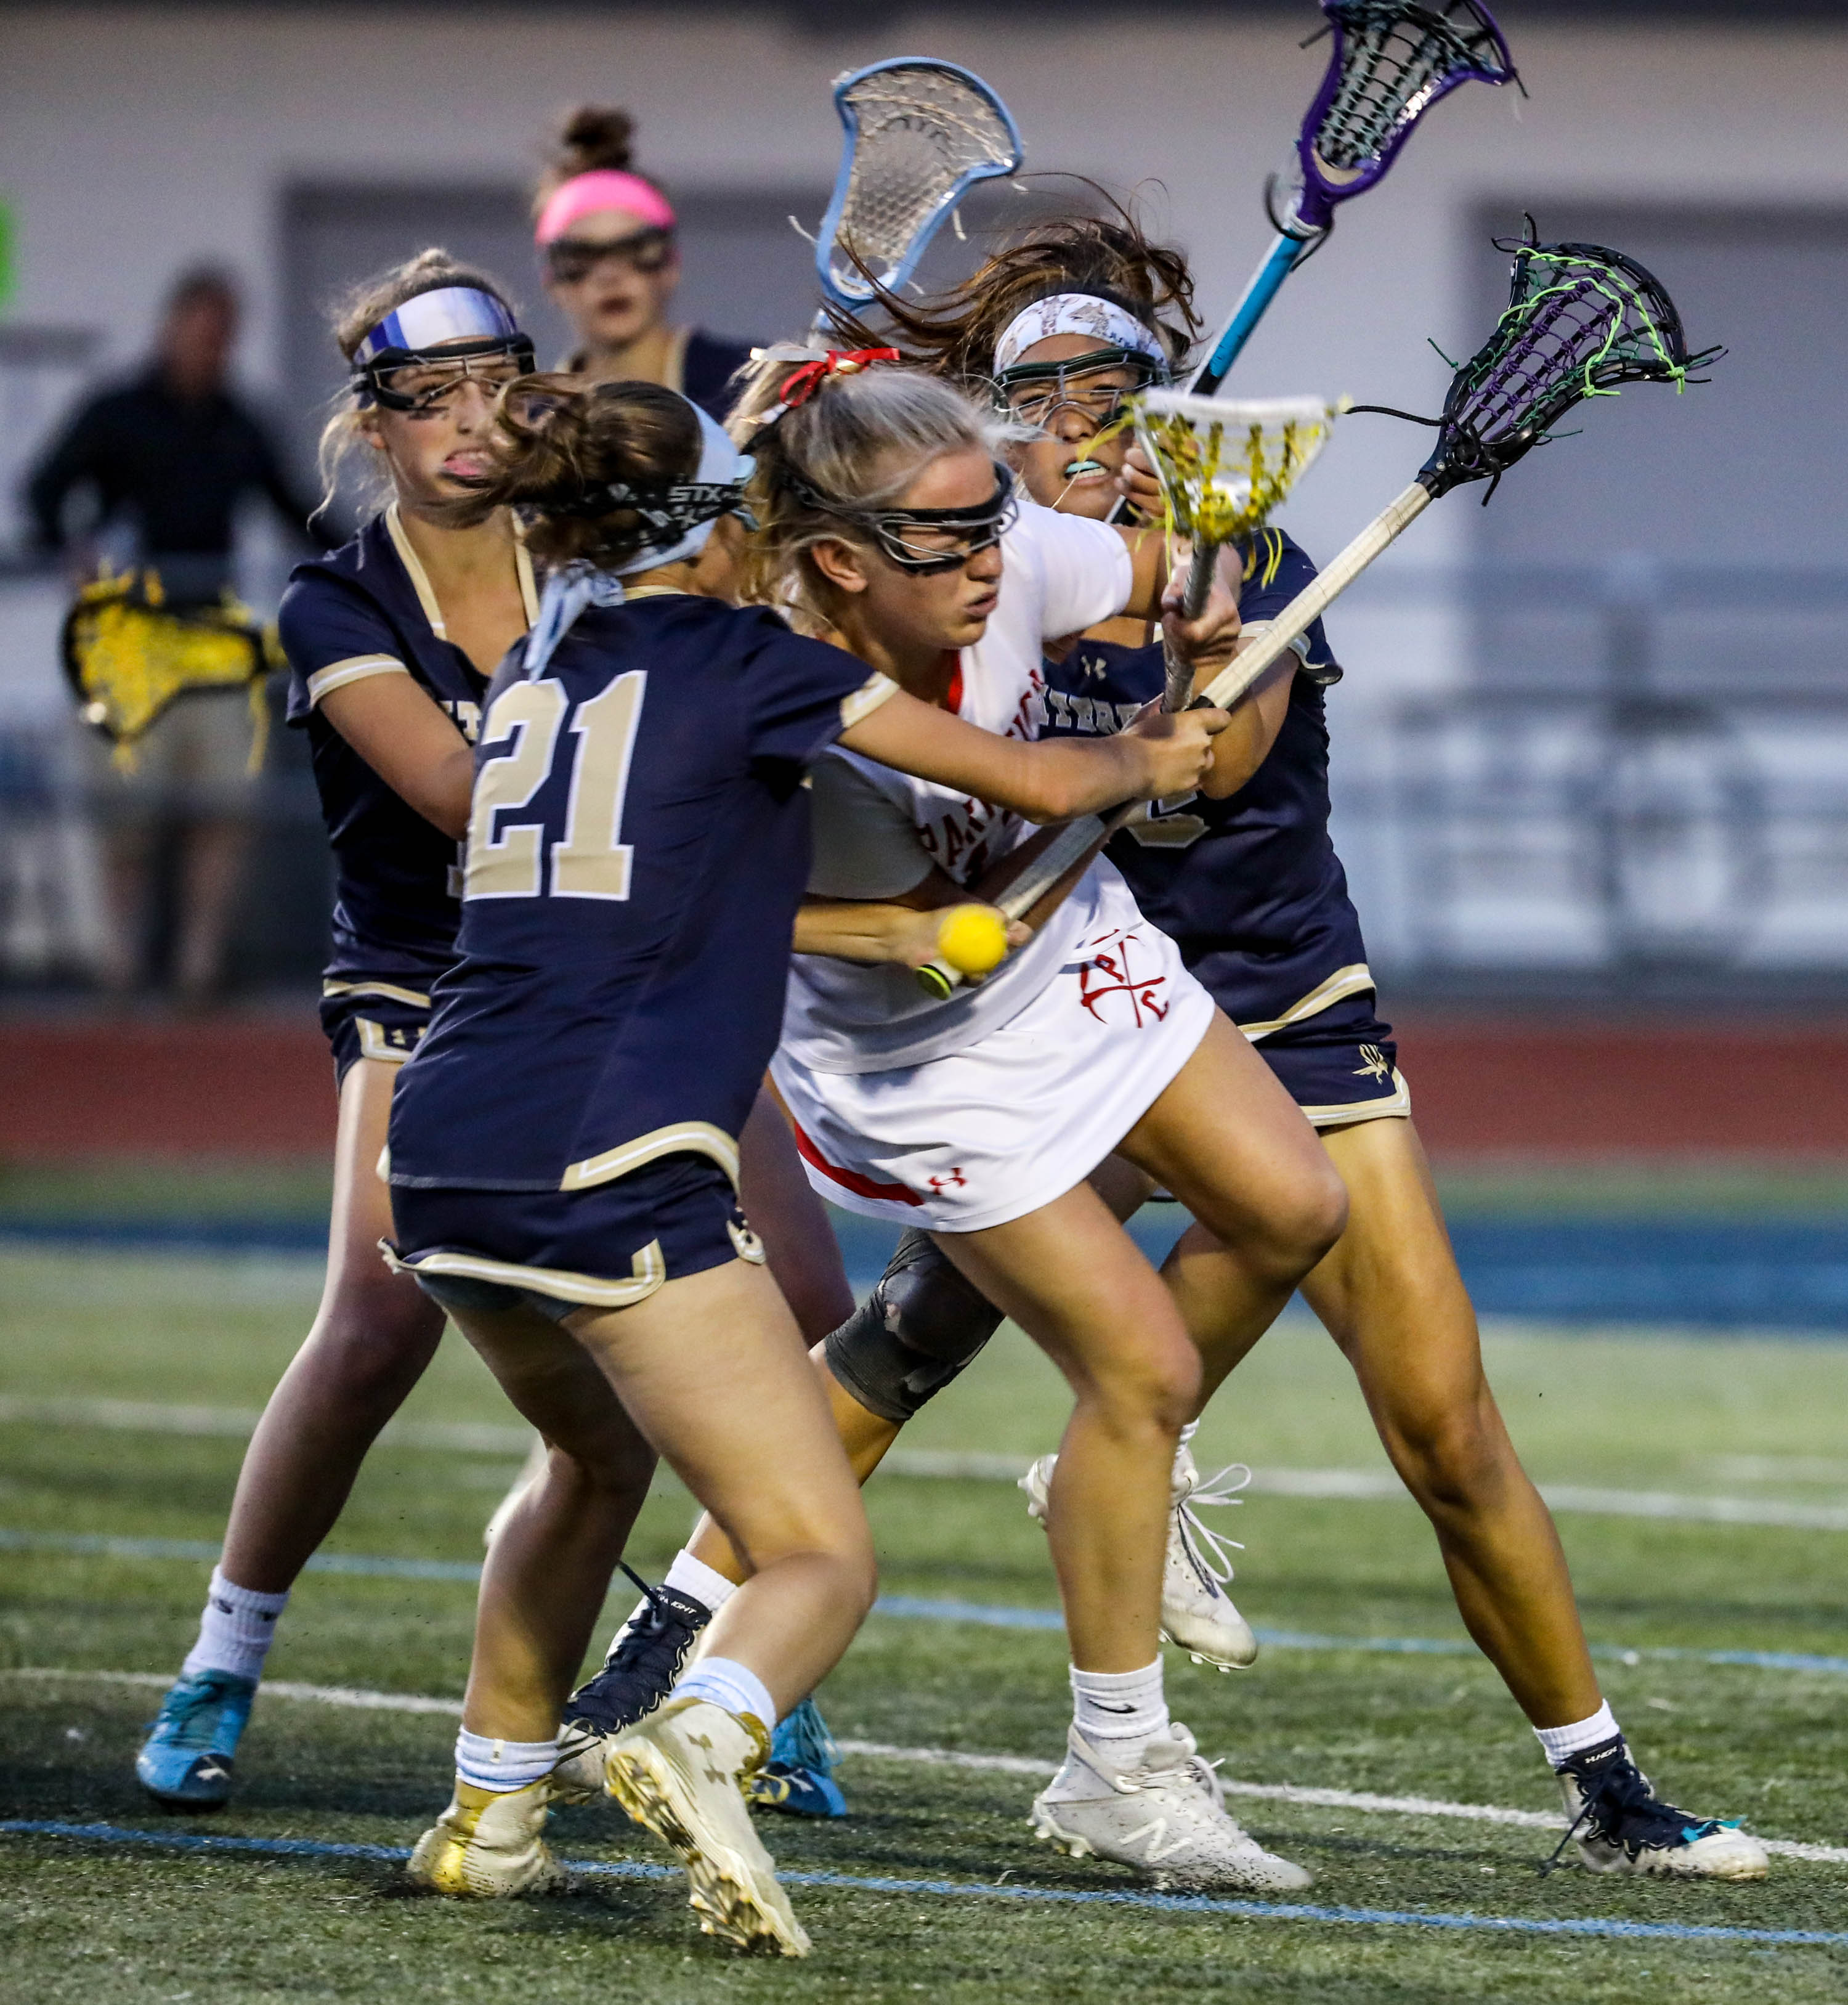 The Waterford Ravens face off against the Park City Miners during the Division A girls lacrosse championship game at Layton High School in Layton on Friday, May 28, 2021.